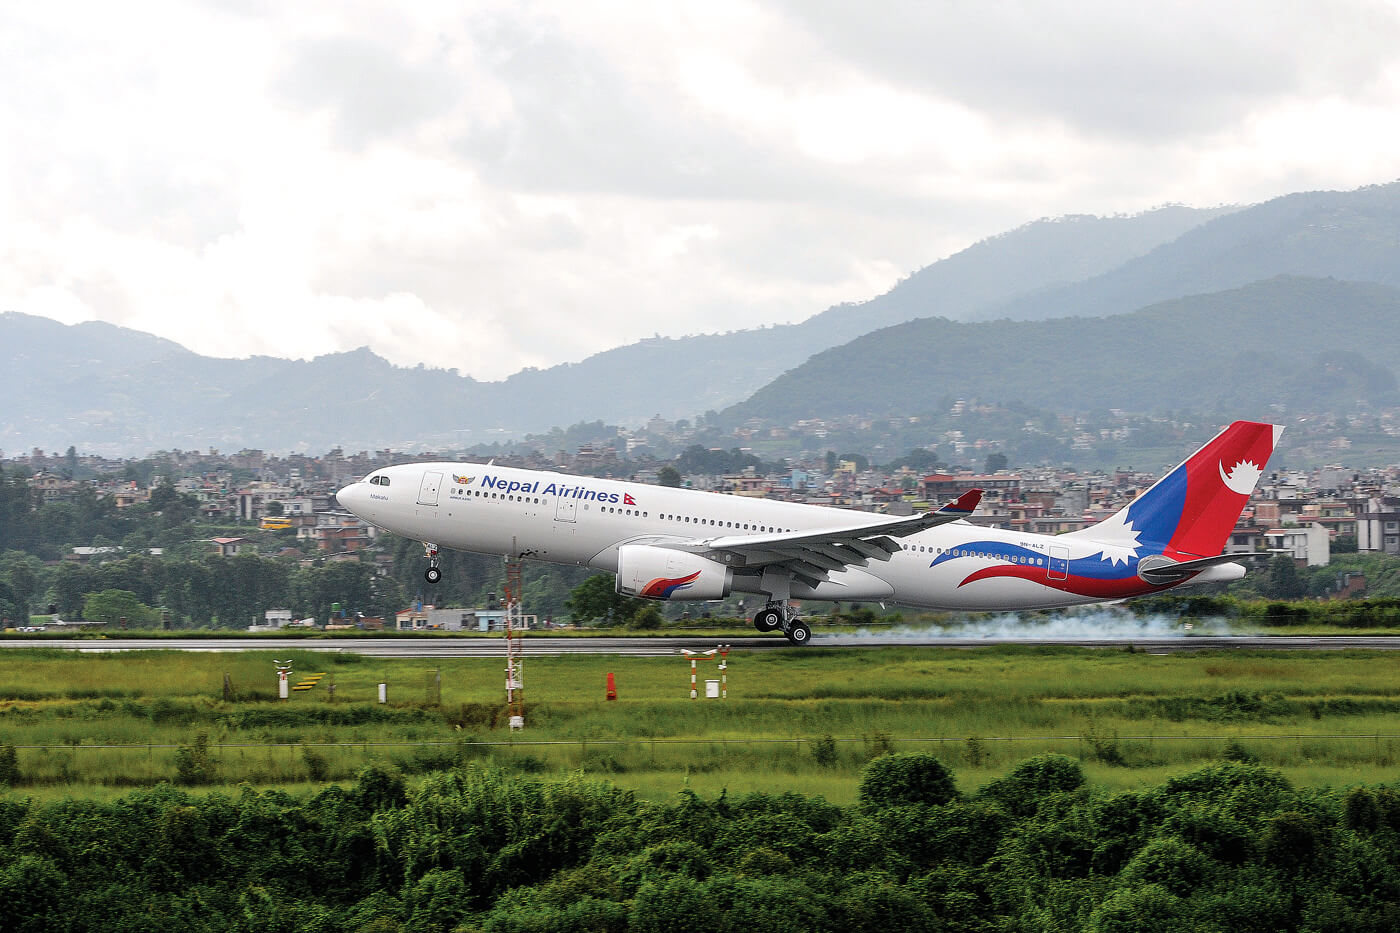 Nepal Airlines has new planes, but no new plans